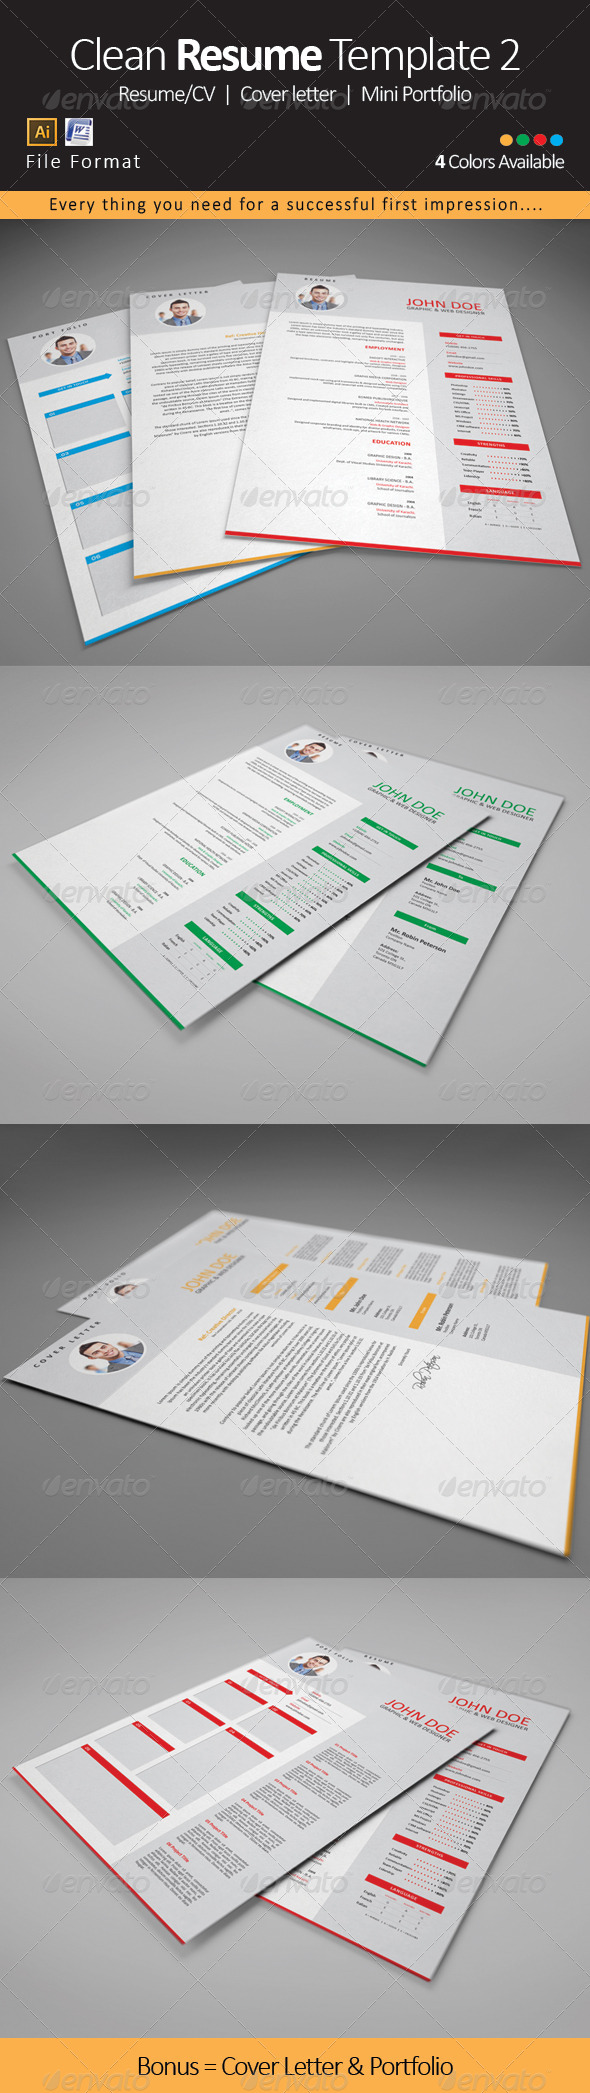 Clean Resume CV Template 2